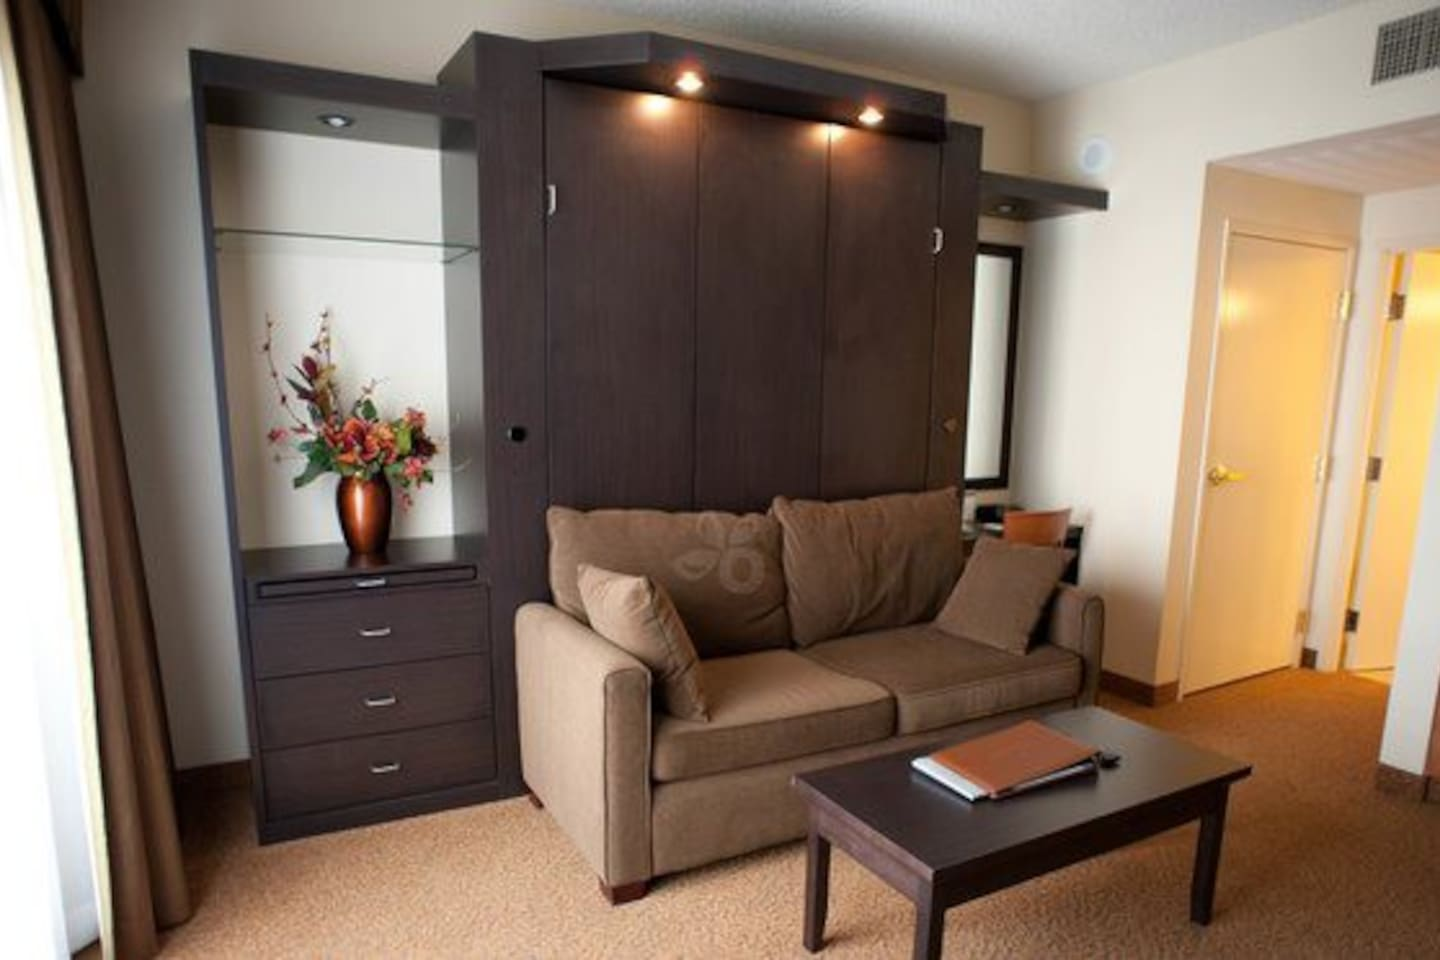 Polo Towers One Bedroom Suite Studio At Polo Towers Suites Apartments For Rent In Las Vegas